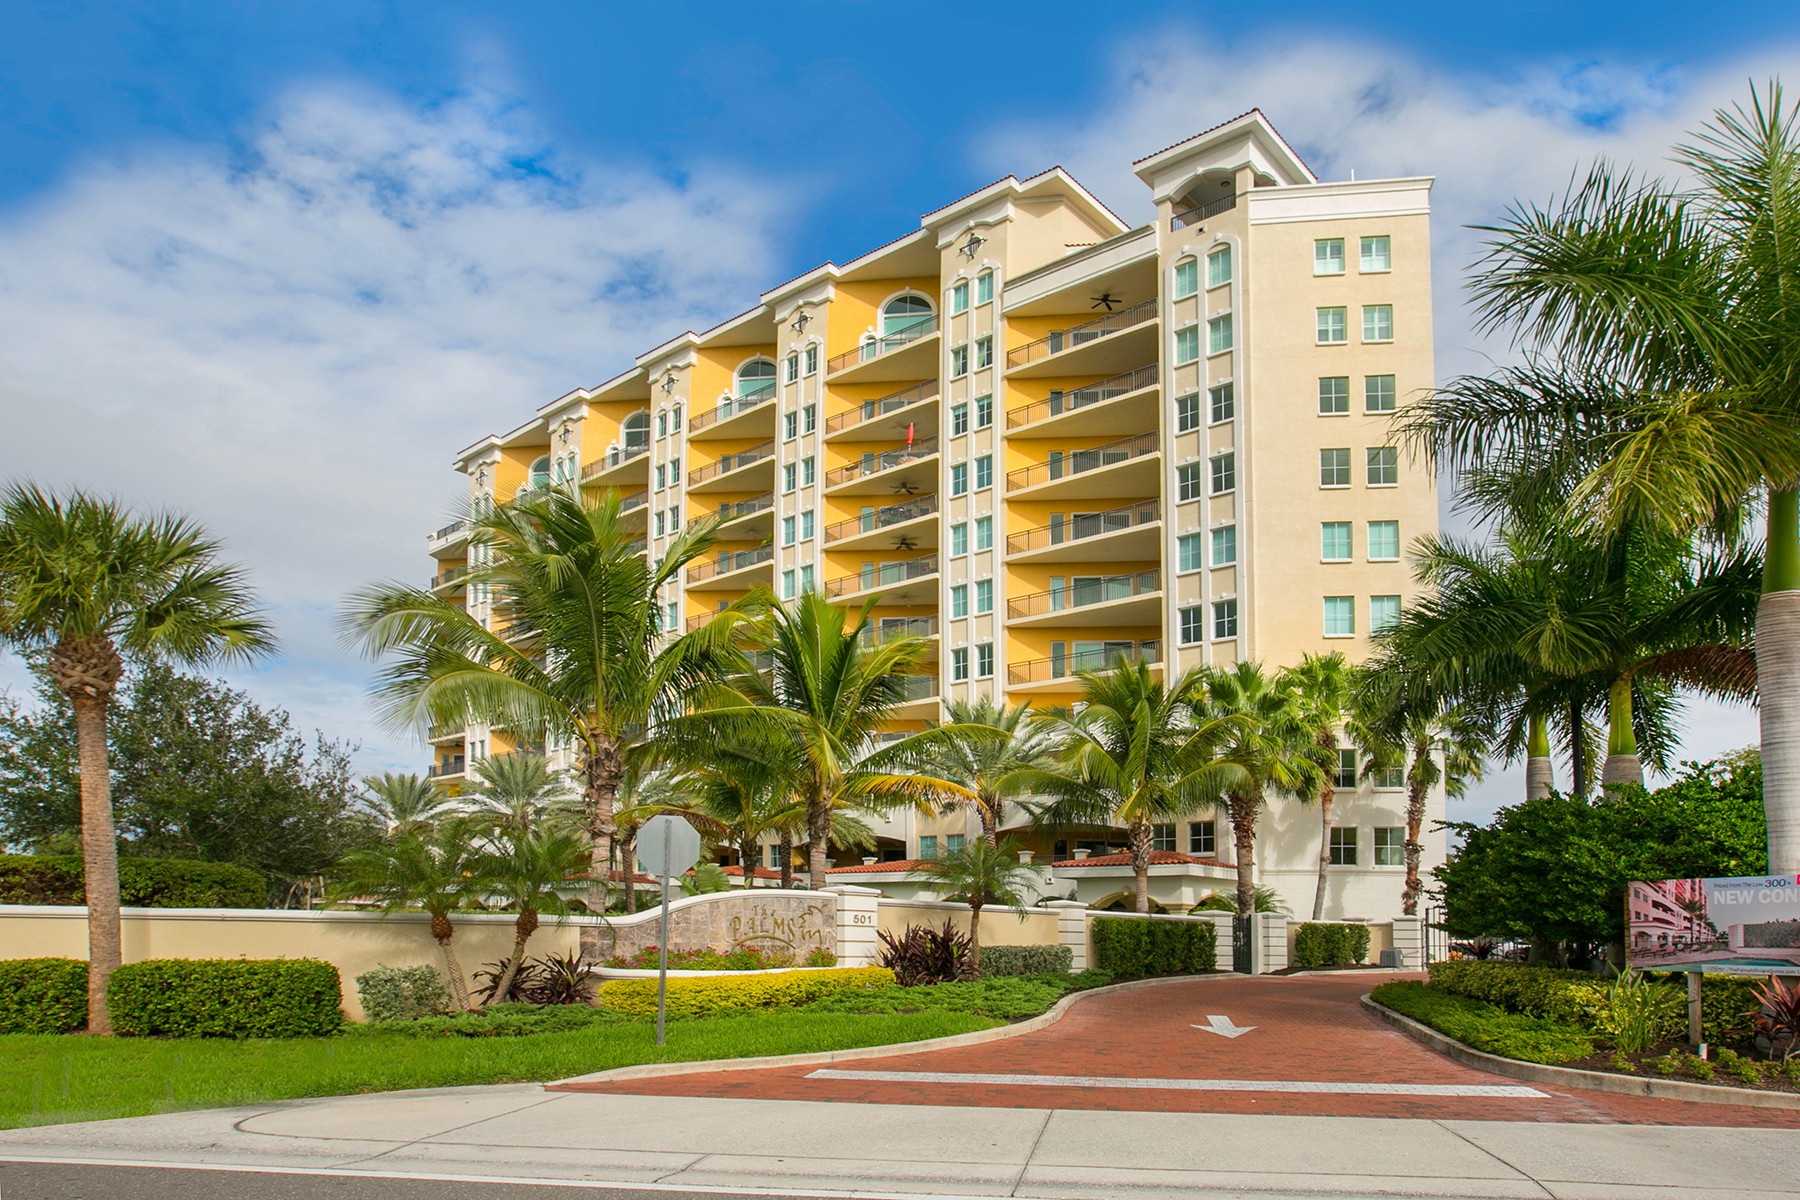 Condominium for Sale at THE PALMS 501 Haben Blvd 506 Palmetto, Florida 34221 United States